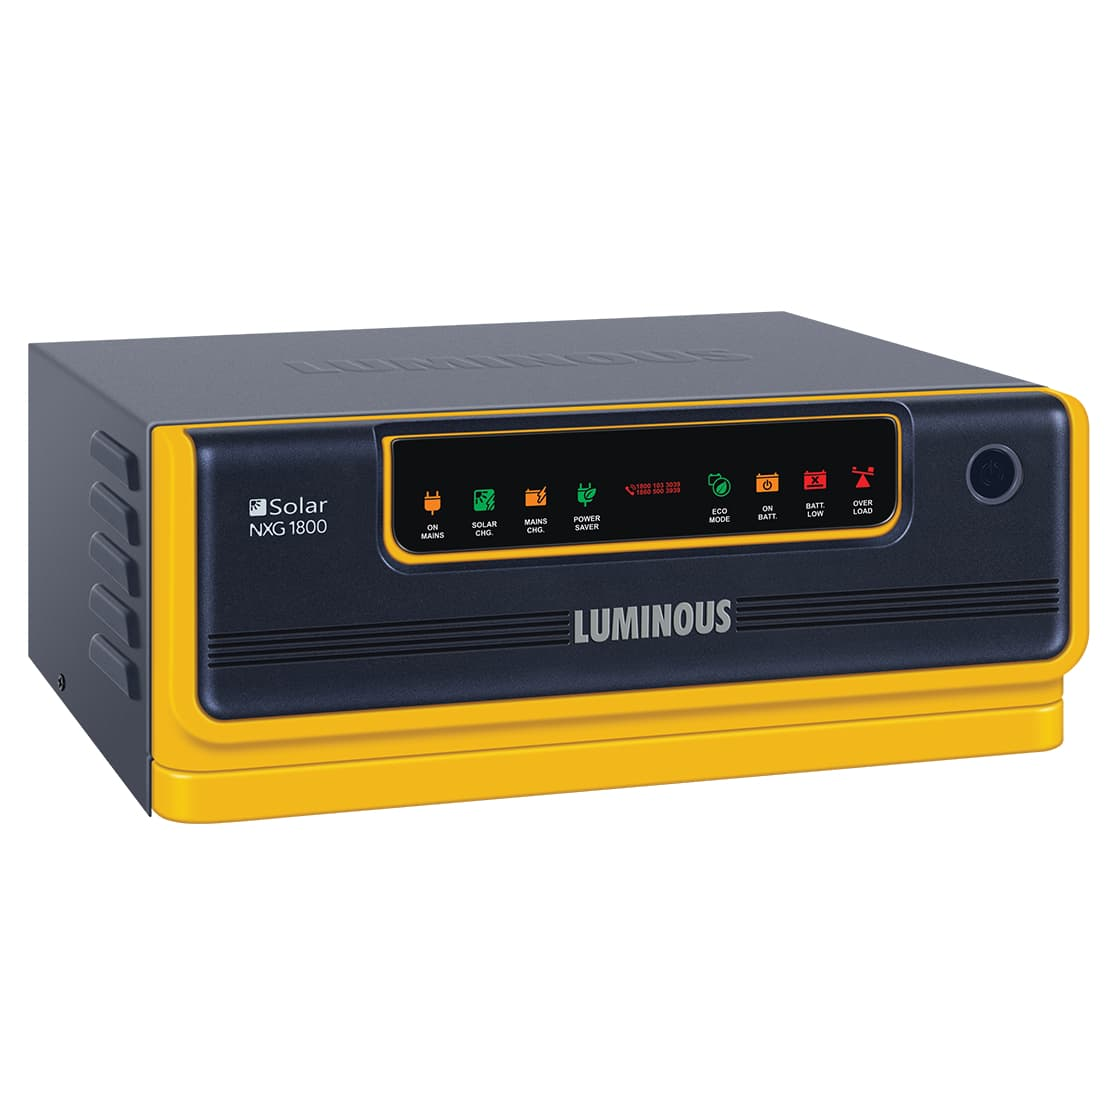 LUMINOUS SOLAR HOME UPS INVERTER NXG1800 24v 1500VA